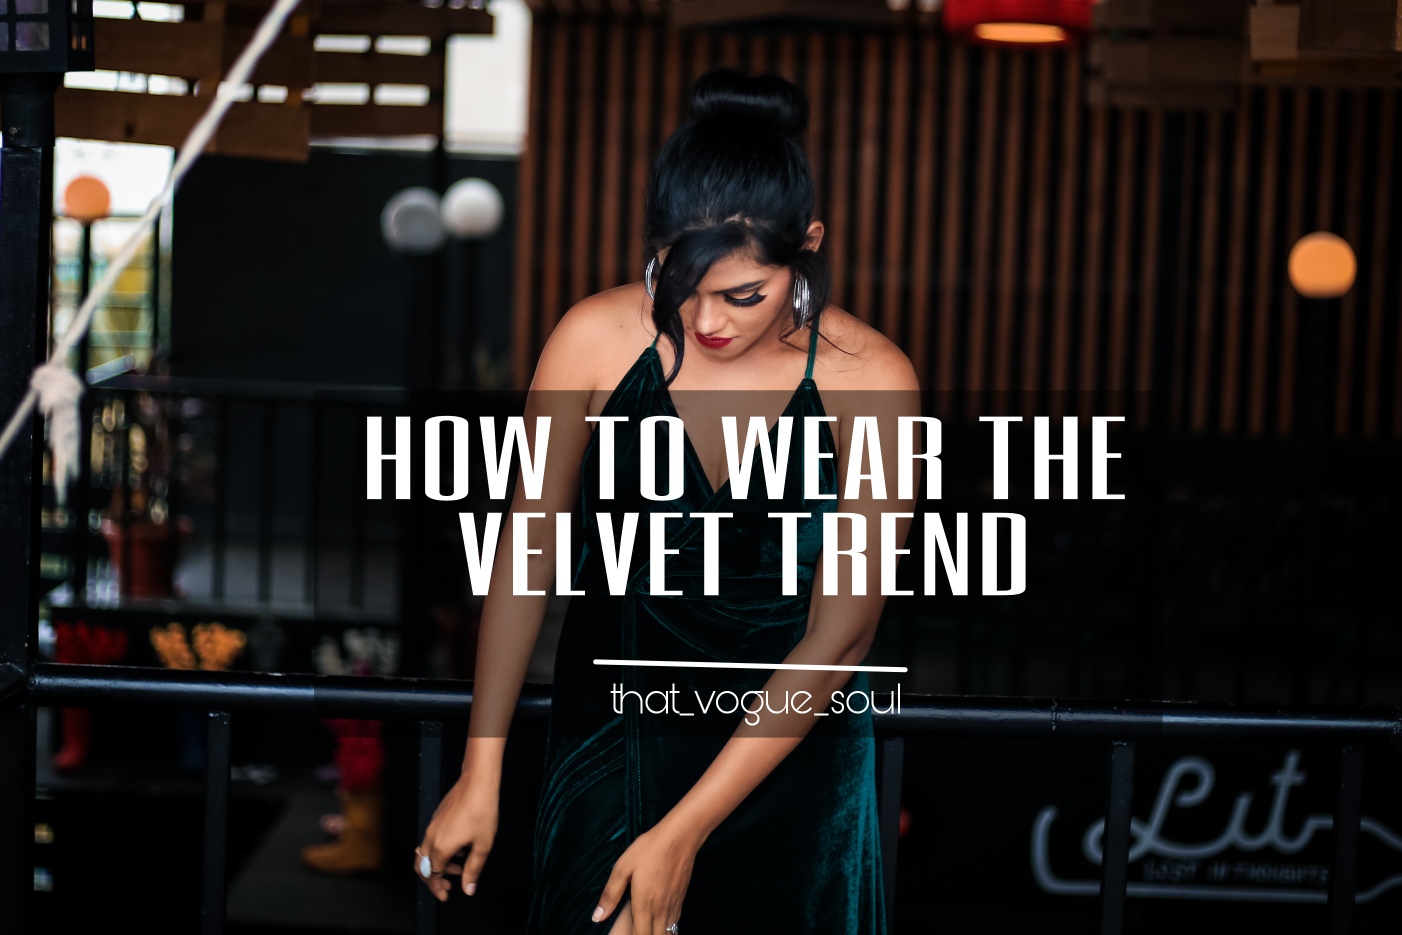 that_vogue_soul-HOW TO WEAR THE VELVET TREND